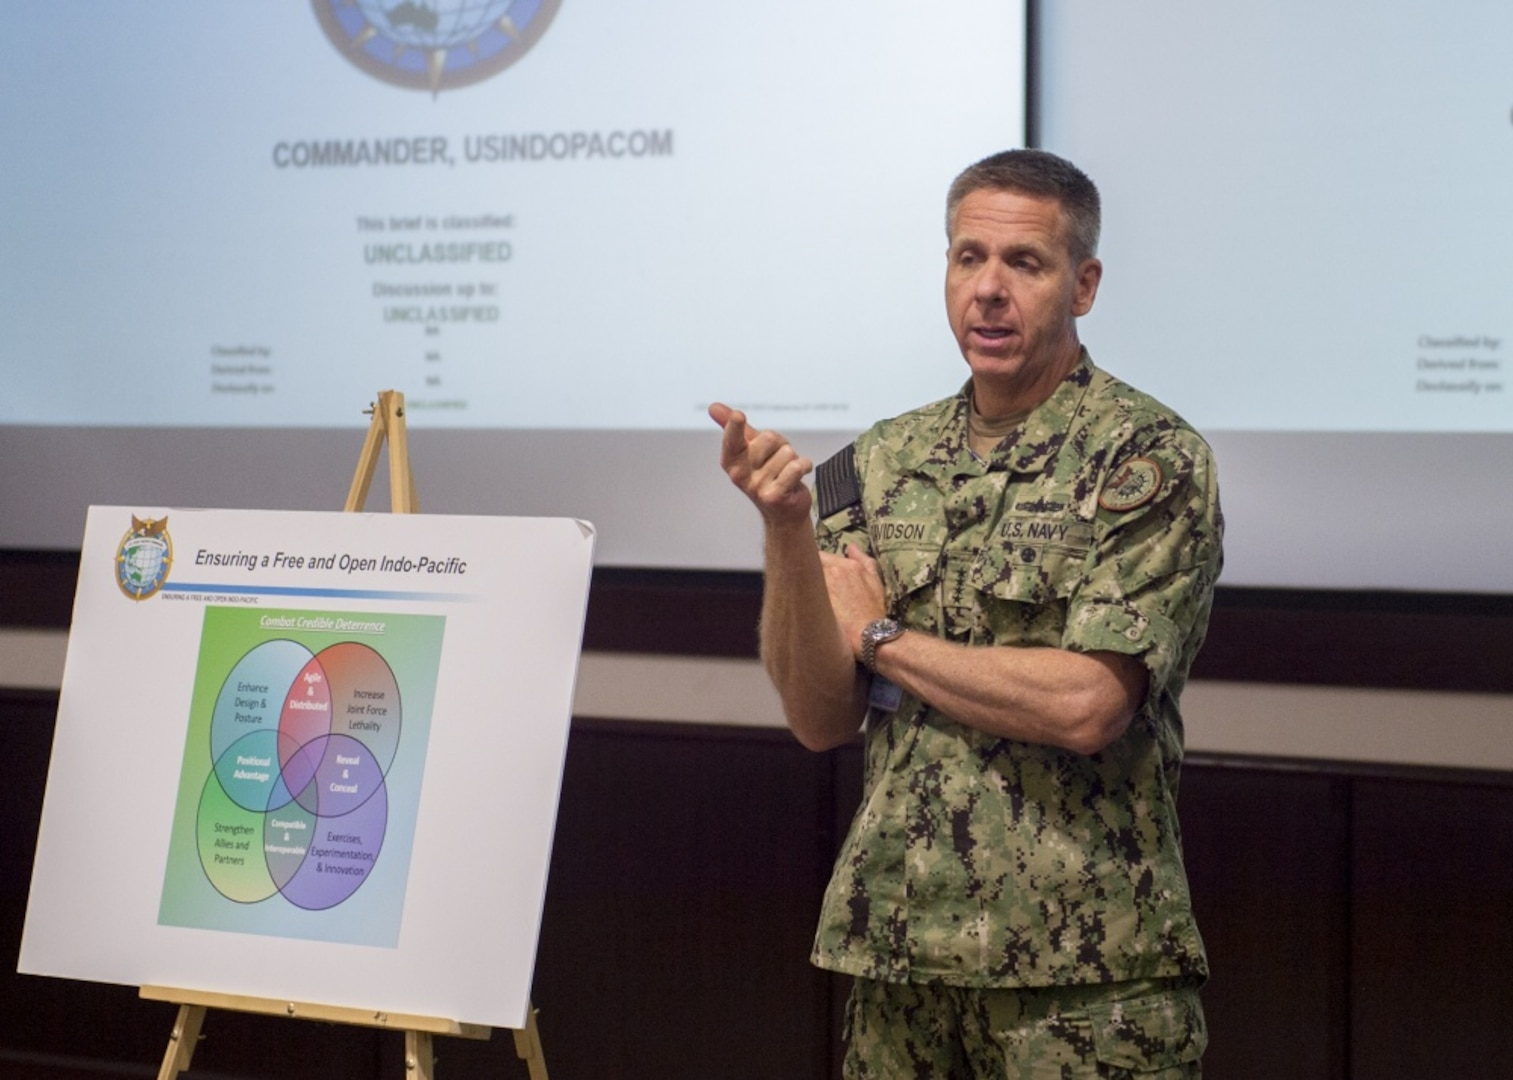 CAMP SMITH, Hawaii (Aug. 7, 2019) – Commander U.S. Indo-Pacific Command (USINDOPACOM), Adm. Phil Davidson, speaks at the Strategic Discussions on U.S. Support of Health and Healthcare in Oceana Conference hosted by the University of Hawaii and USINDOPACOM. University of Hawaii and USINDOPACOM brought together more than 100 regional and healthcare professionals from the military, Center for Disease Control, USAID, and other organizations to discuss issues ranging from infectious diseases, food security, training, and medical infrastructure in the region.